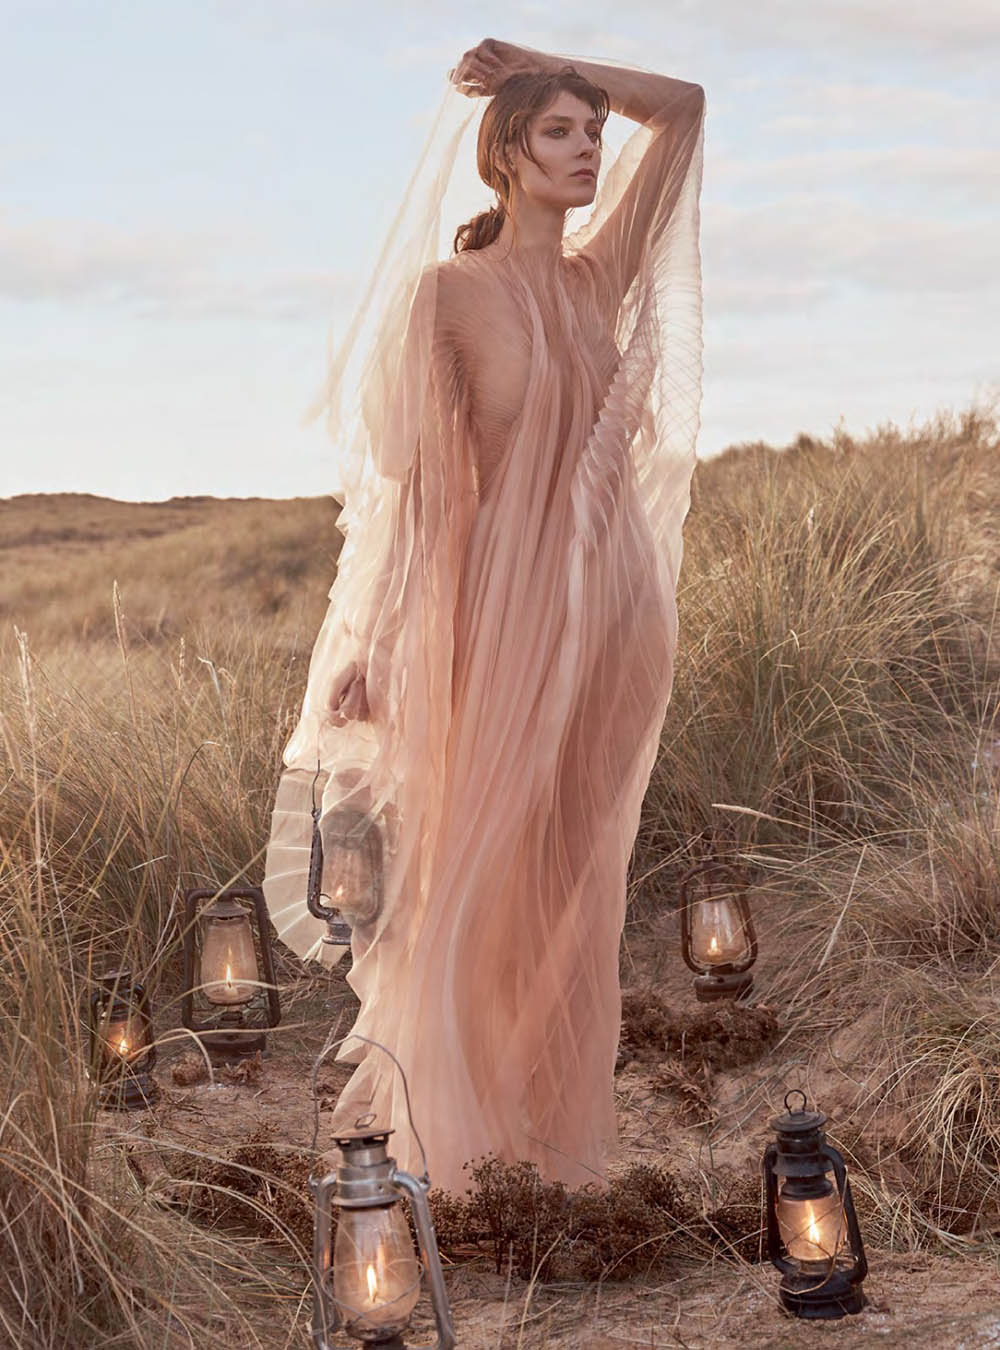 Kati Nescher by Richard Phibbs for Harper's Bazaar UK January 2019